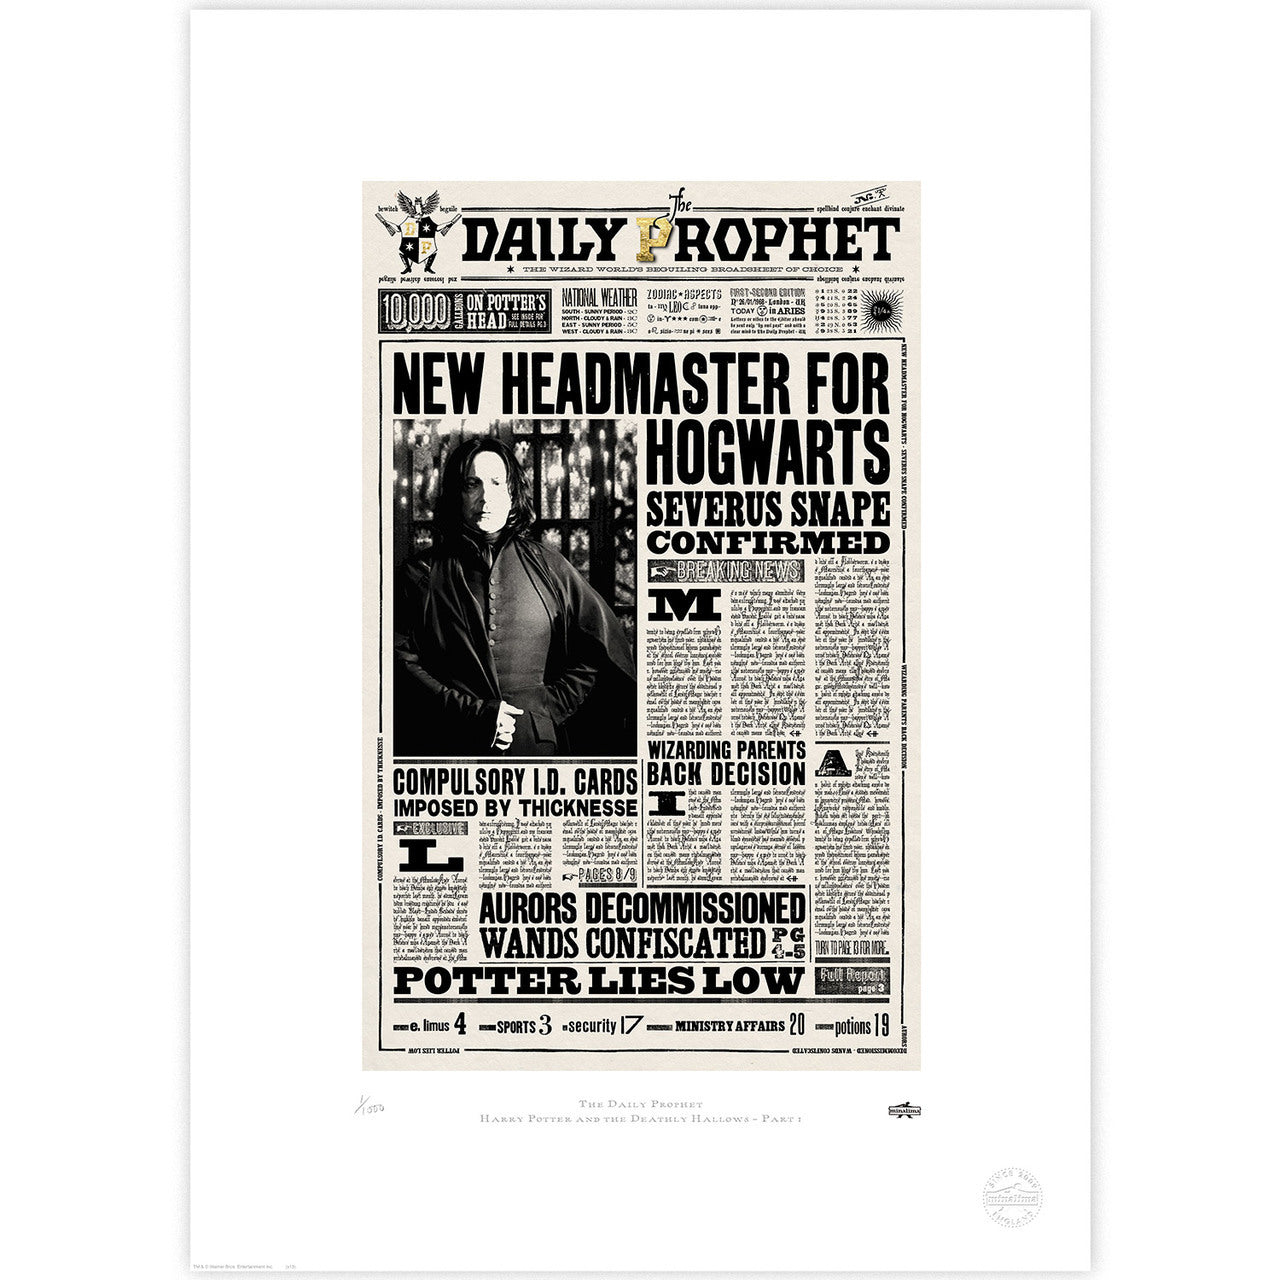 image regarding Daily Prophet Printable called The Day-to-day Prophet - Refreshing Headmaster for Hogwarts